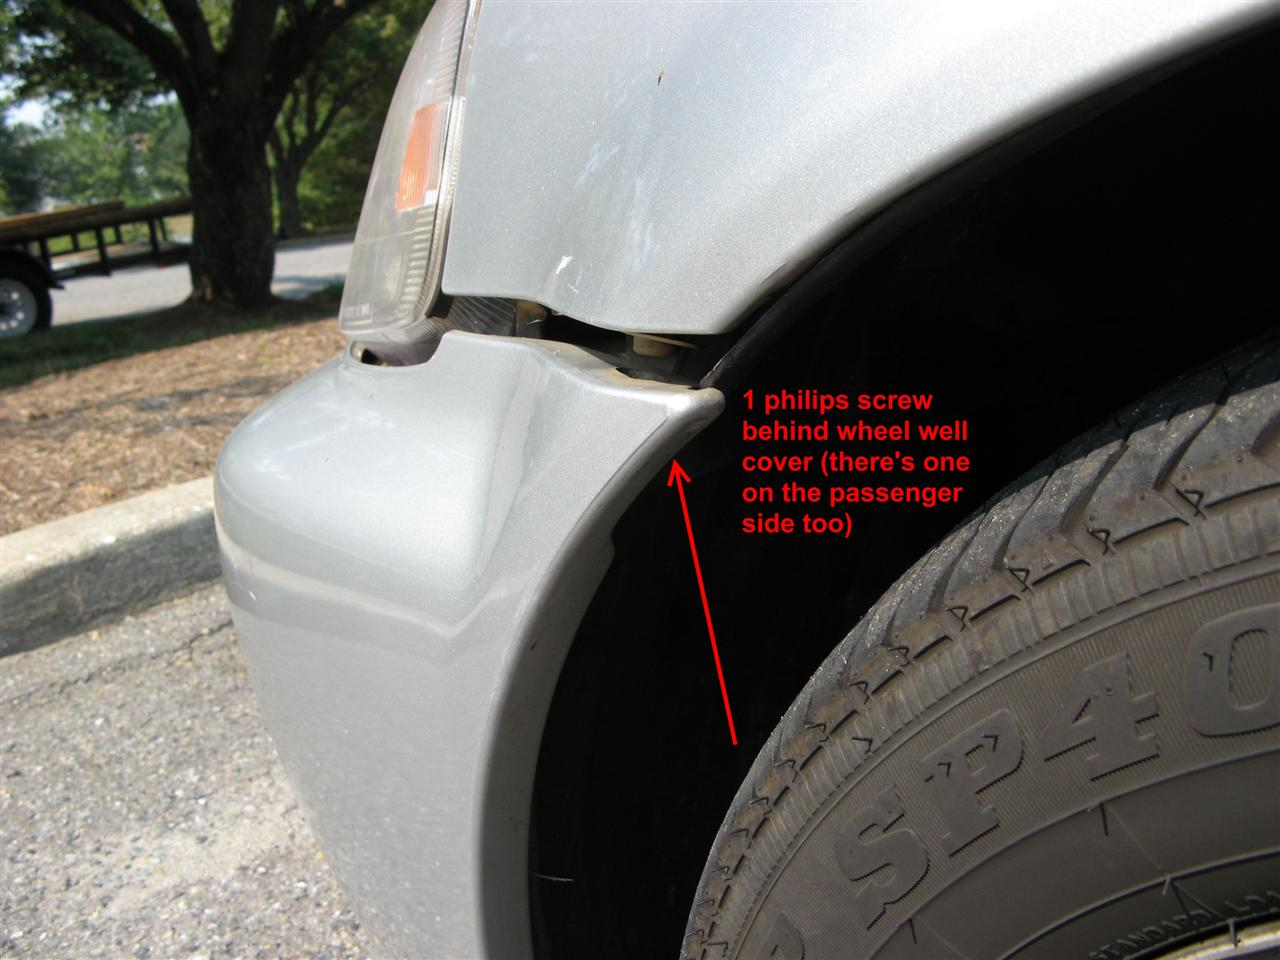 jRin net » HowTo – Civic front bumper removal